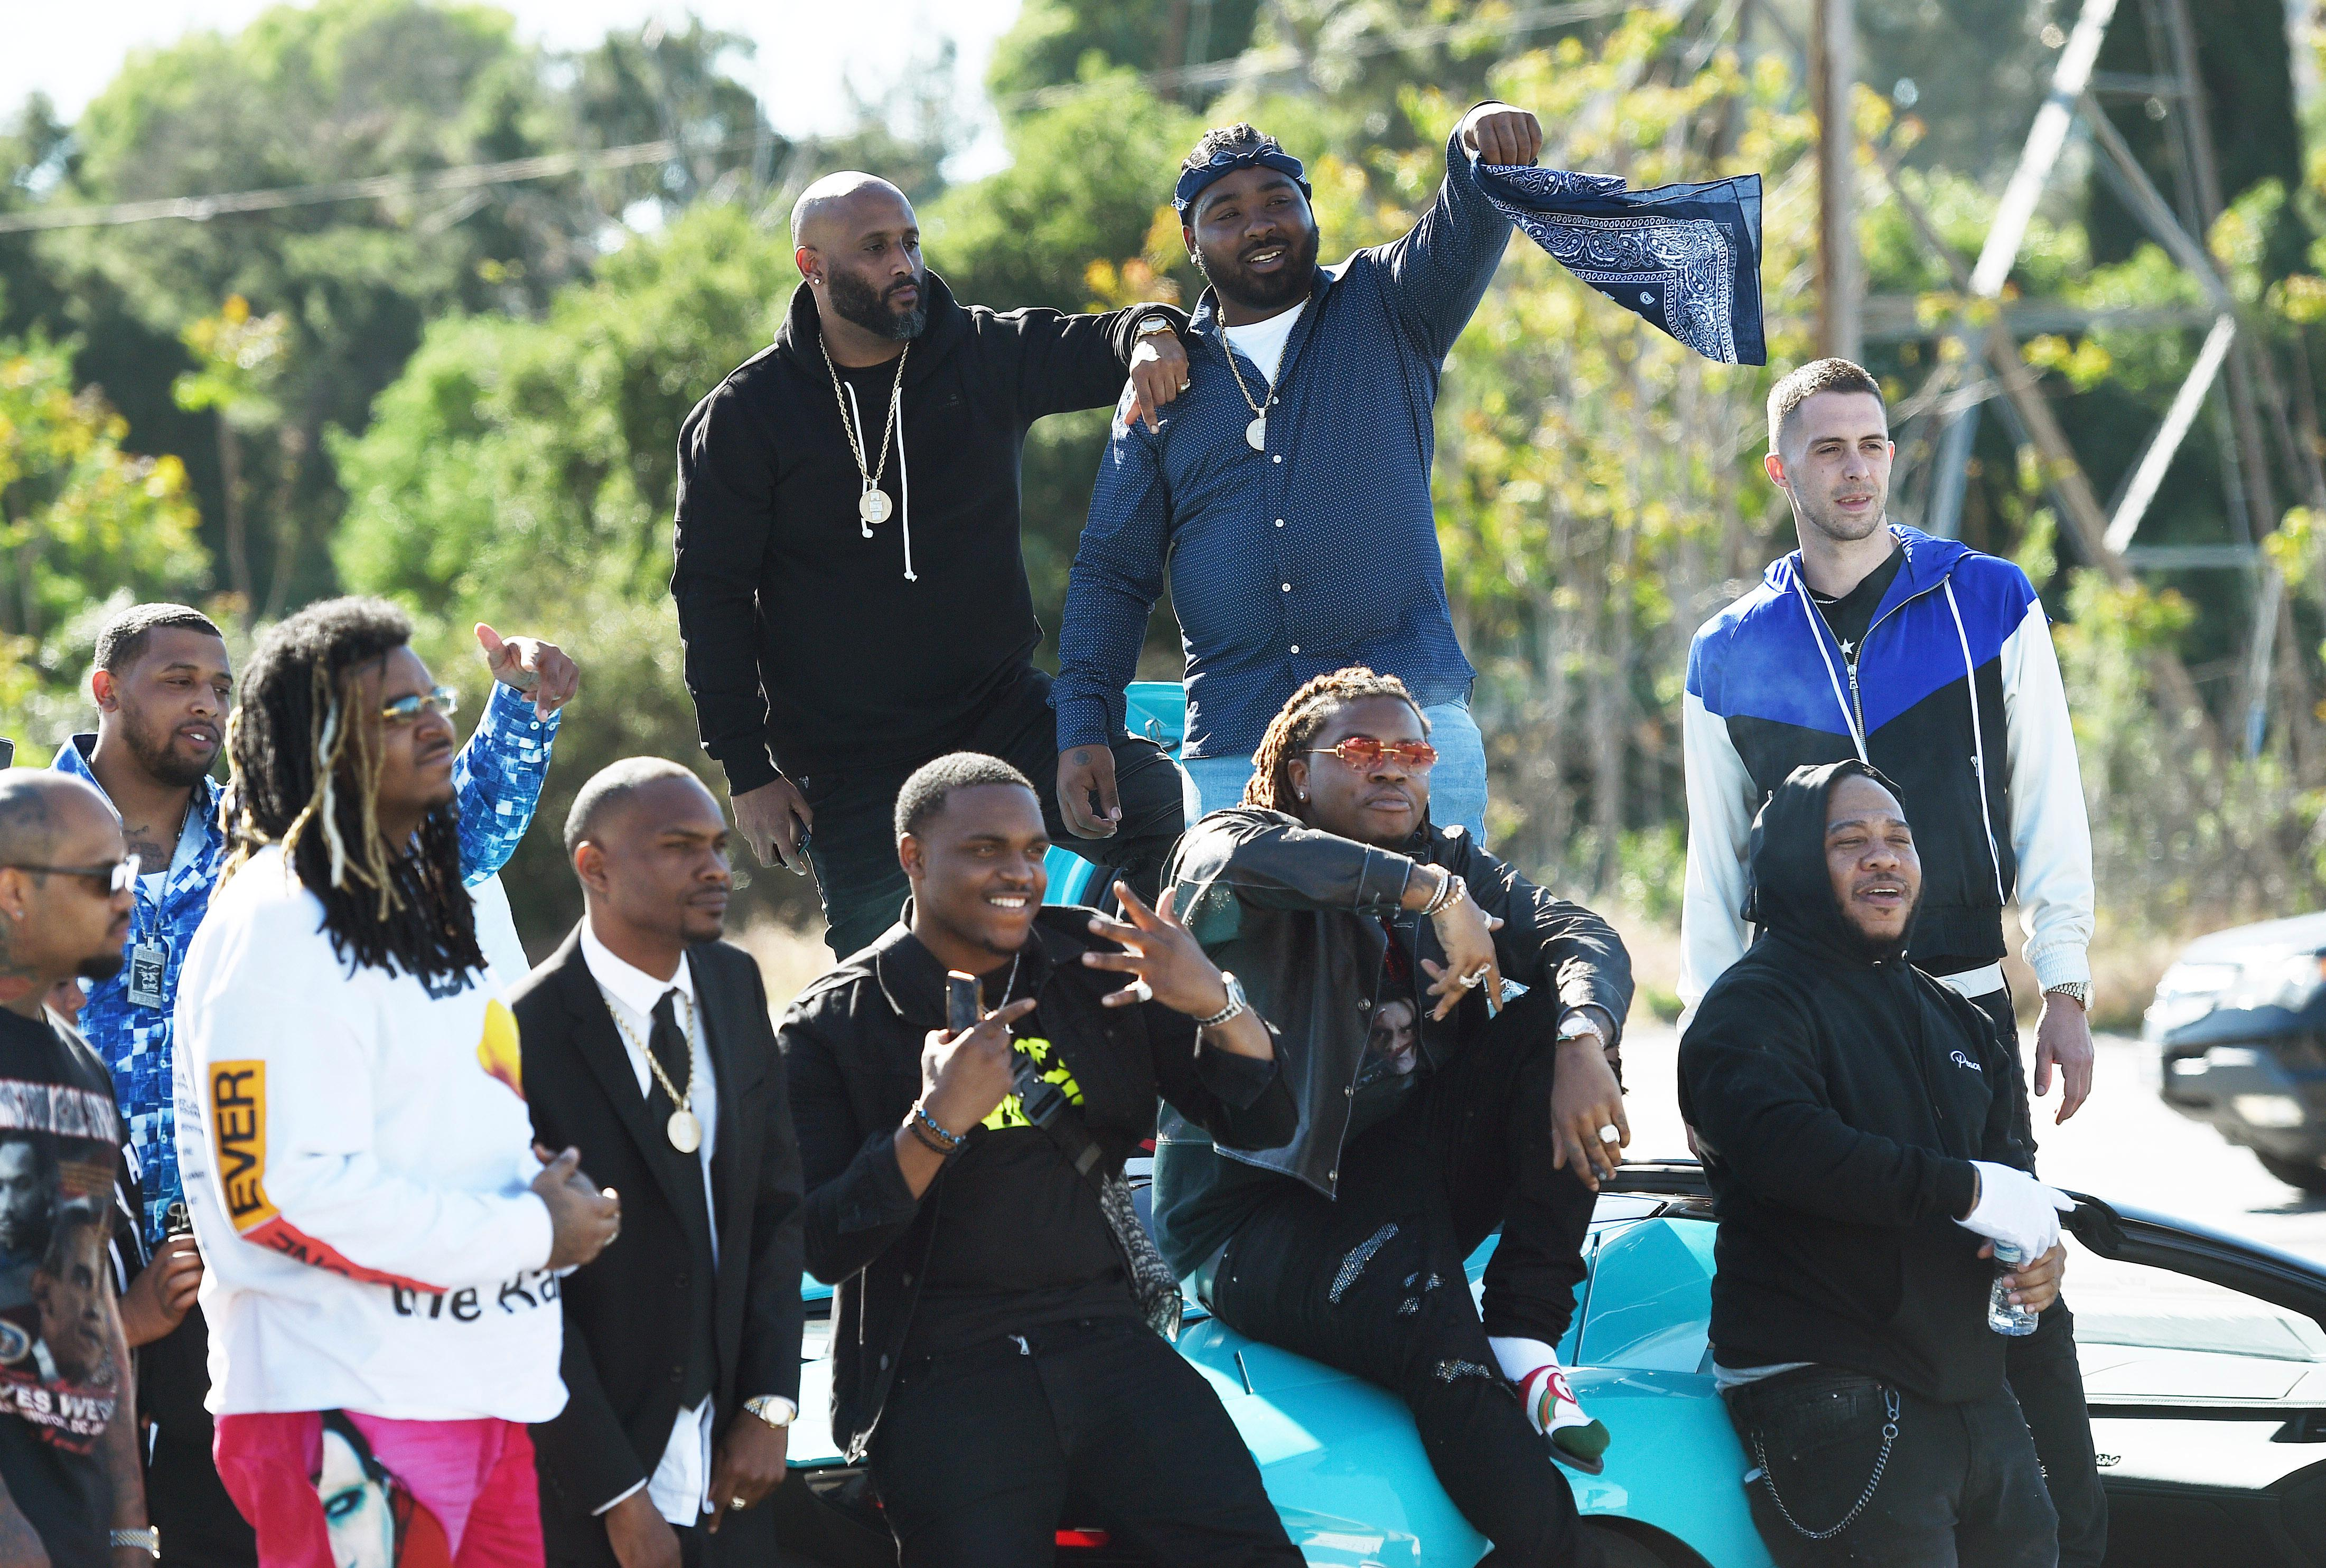 Attendees of a burial service for the late rapper Nipsey Hussle stage to tribute to him before they leave the Forest Lawn Hollywood Hills cemetery, Friday, April 12, 2019 in Los Angeles. (Photo by Chris Pizzello/Invision/AP)